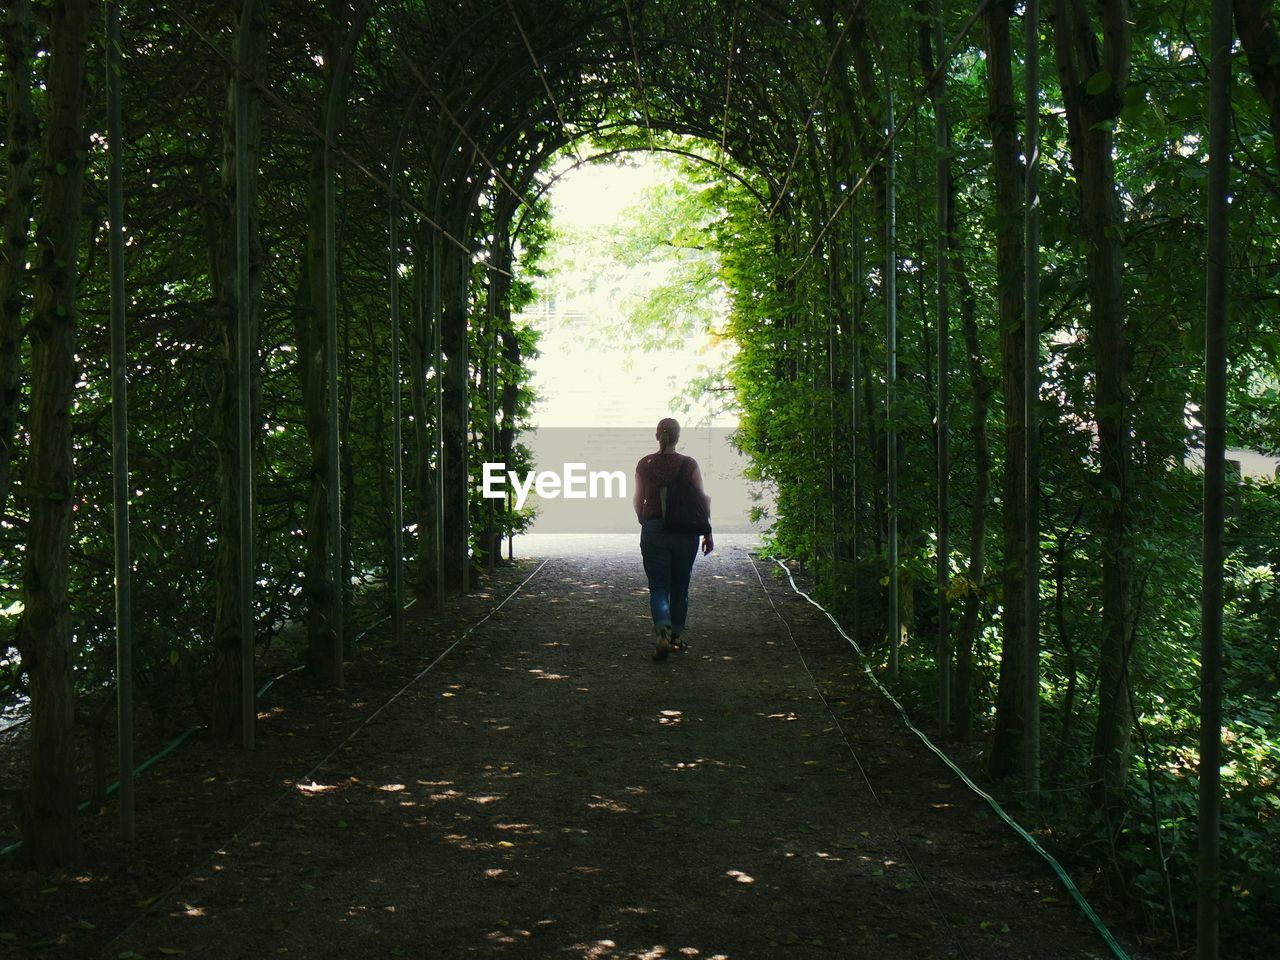 Rear View Of Woman Walking In Green Tunnel